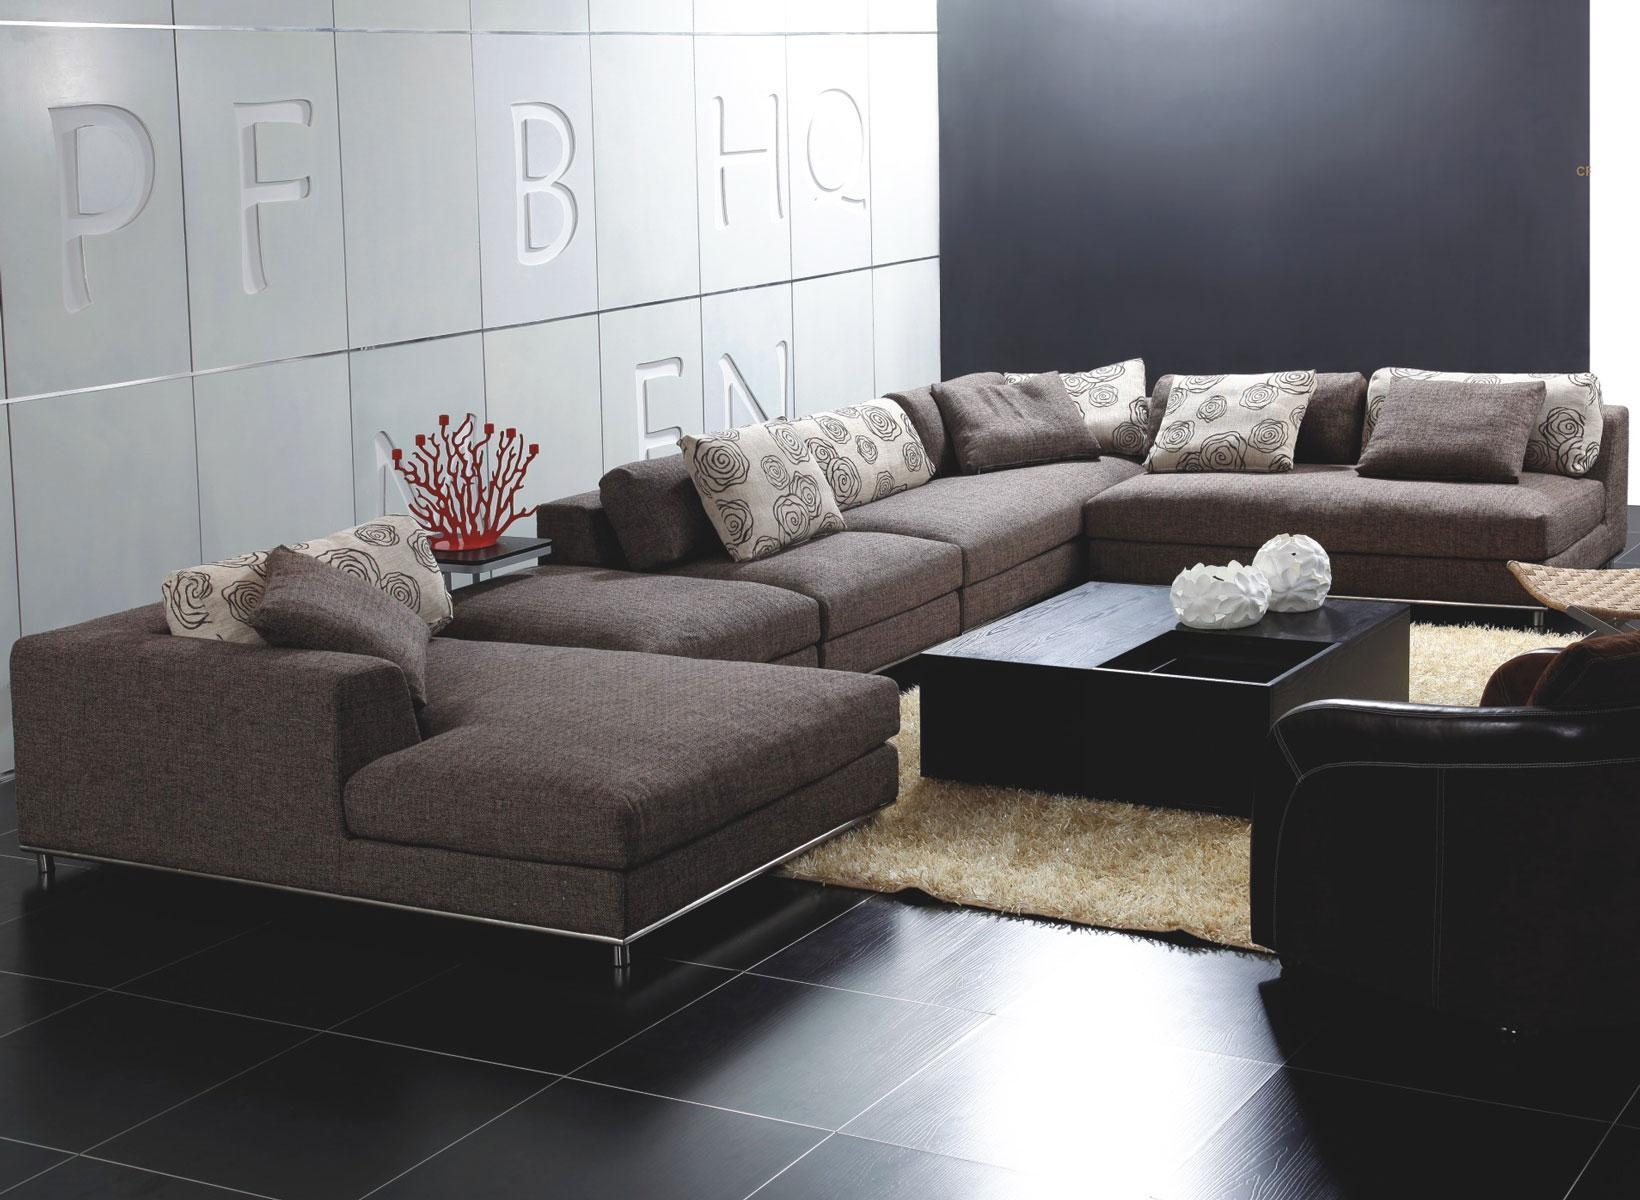 Contemporary Fabric Sectional Sofas #17314 For Contemporary Fabric Sofas (Image 5 of 20)